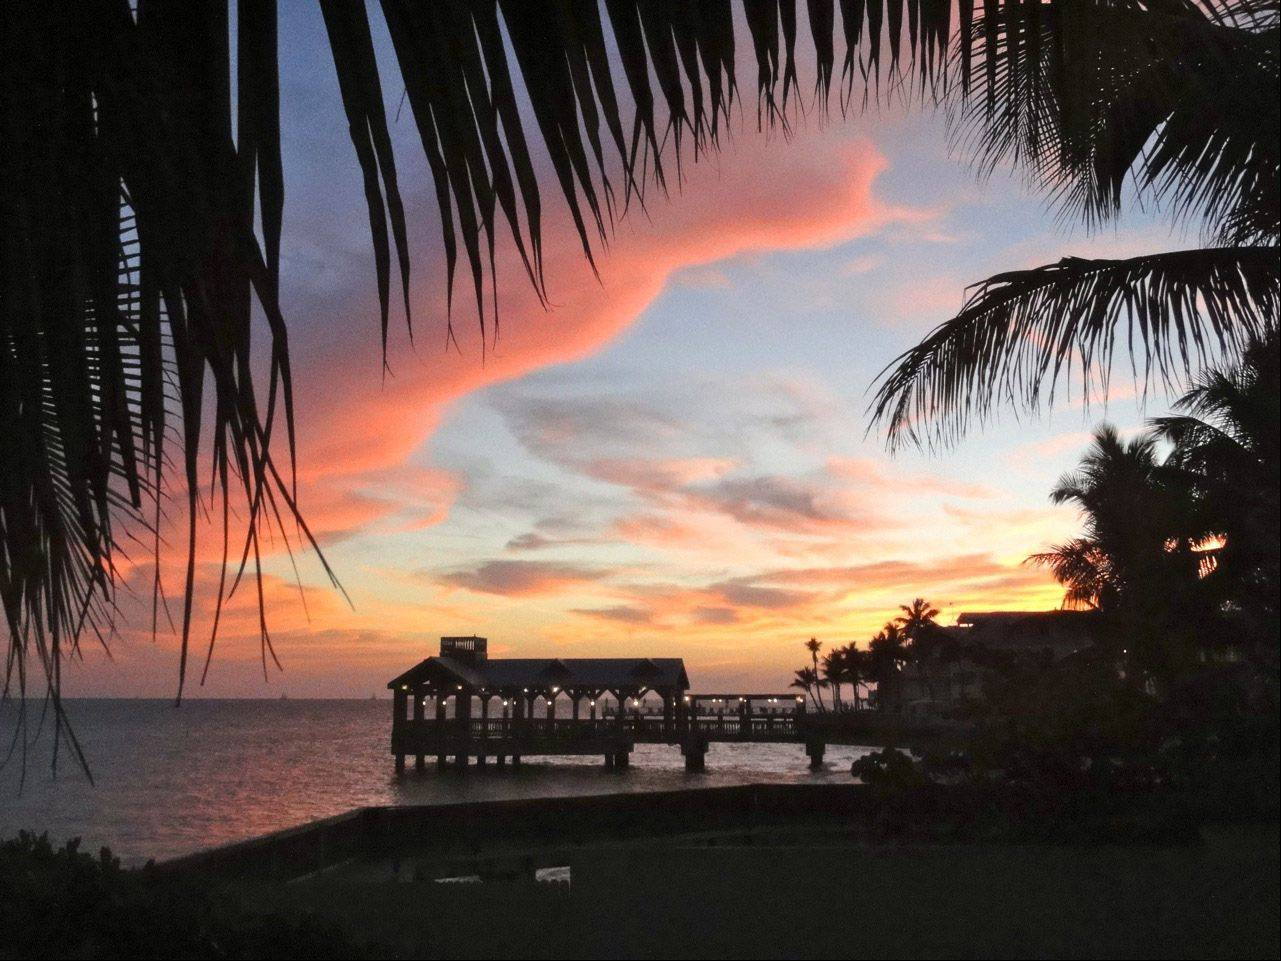 While enjoying dinner in Key West, I had a perfect sunset view. I thought the colors were lovely and enjoyed seeing them change by the minute. The palm trees and dock made a perfect contrast, so after watching the nature show for a time, I finally snapped this picture.